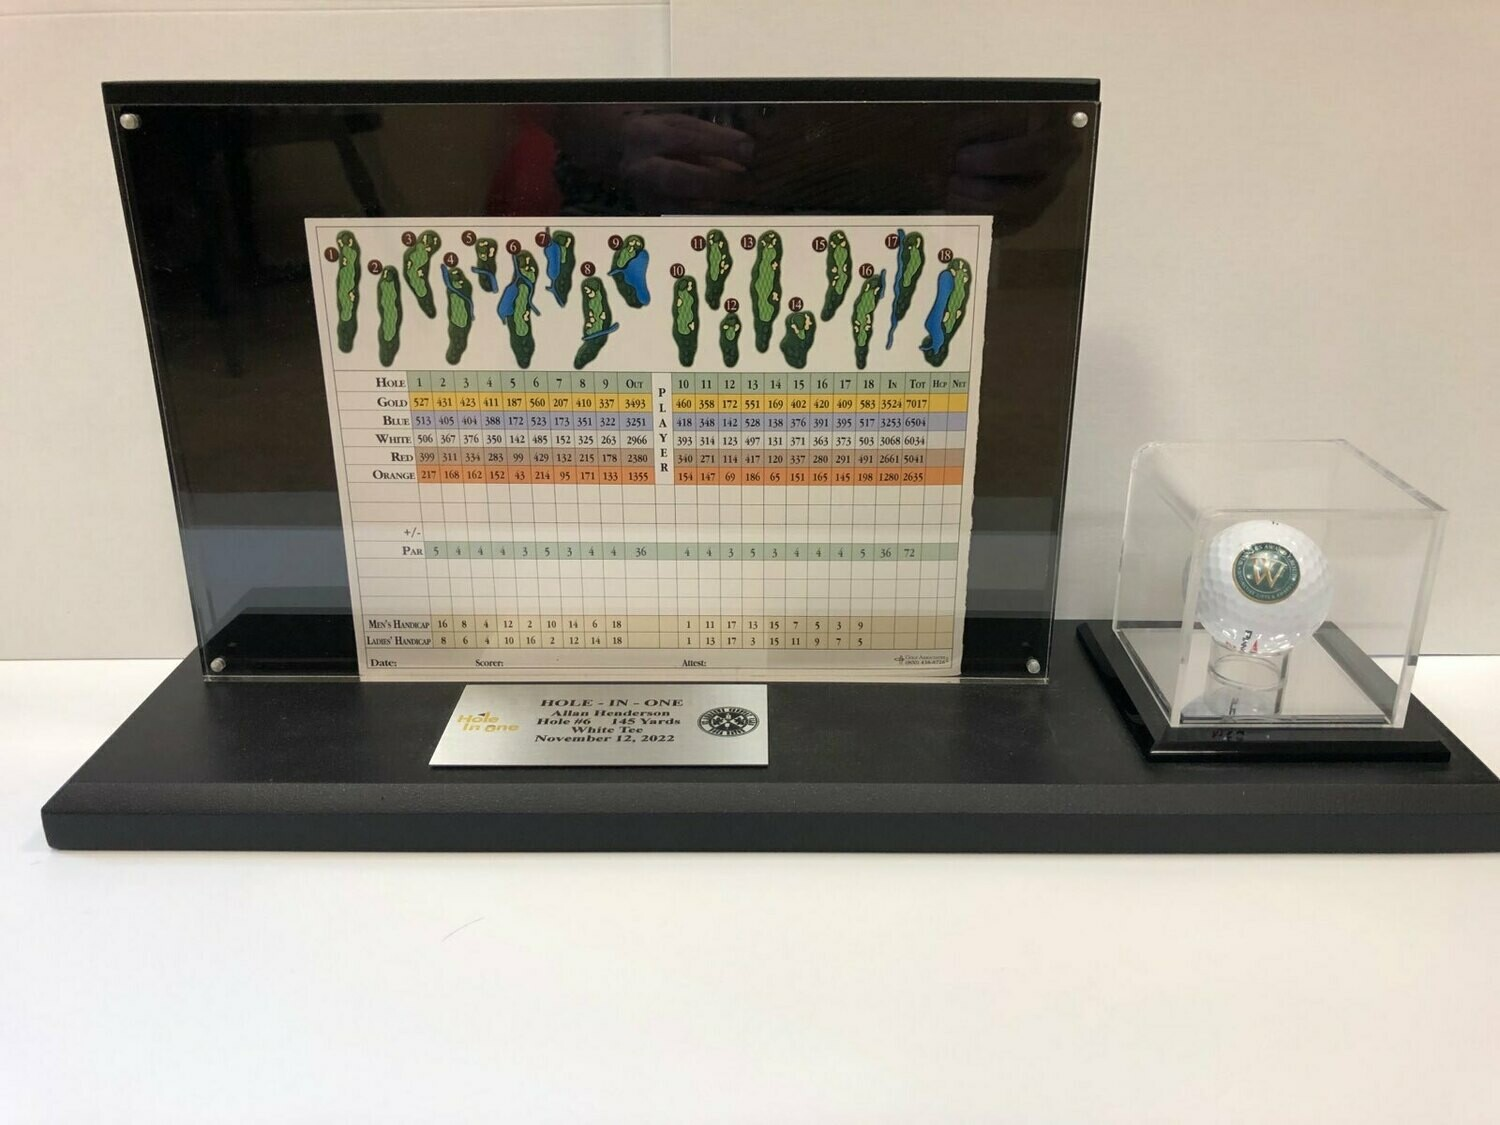 Score Card Display